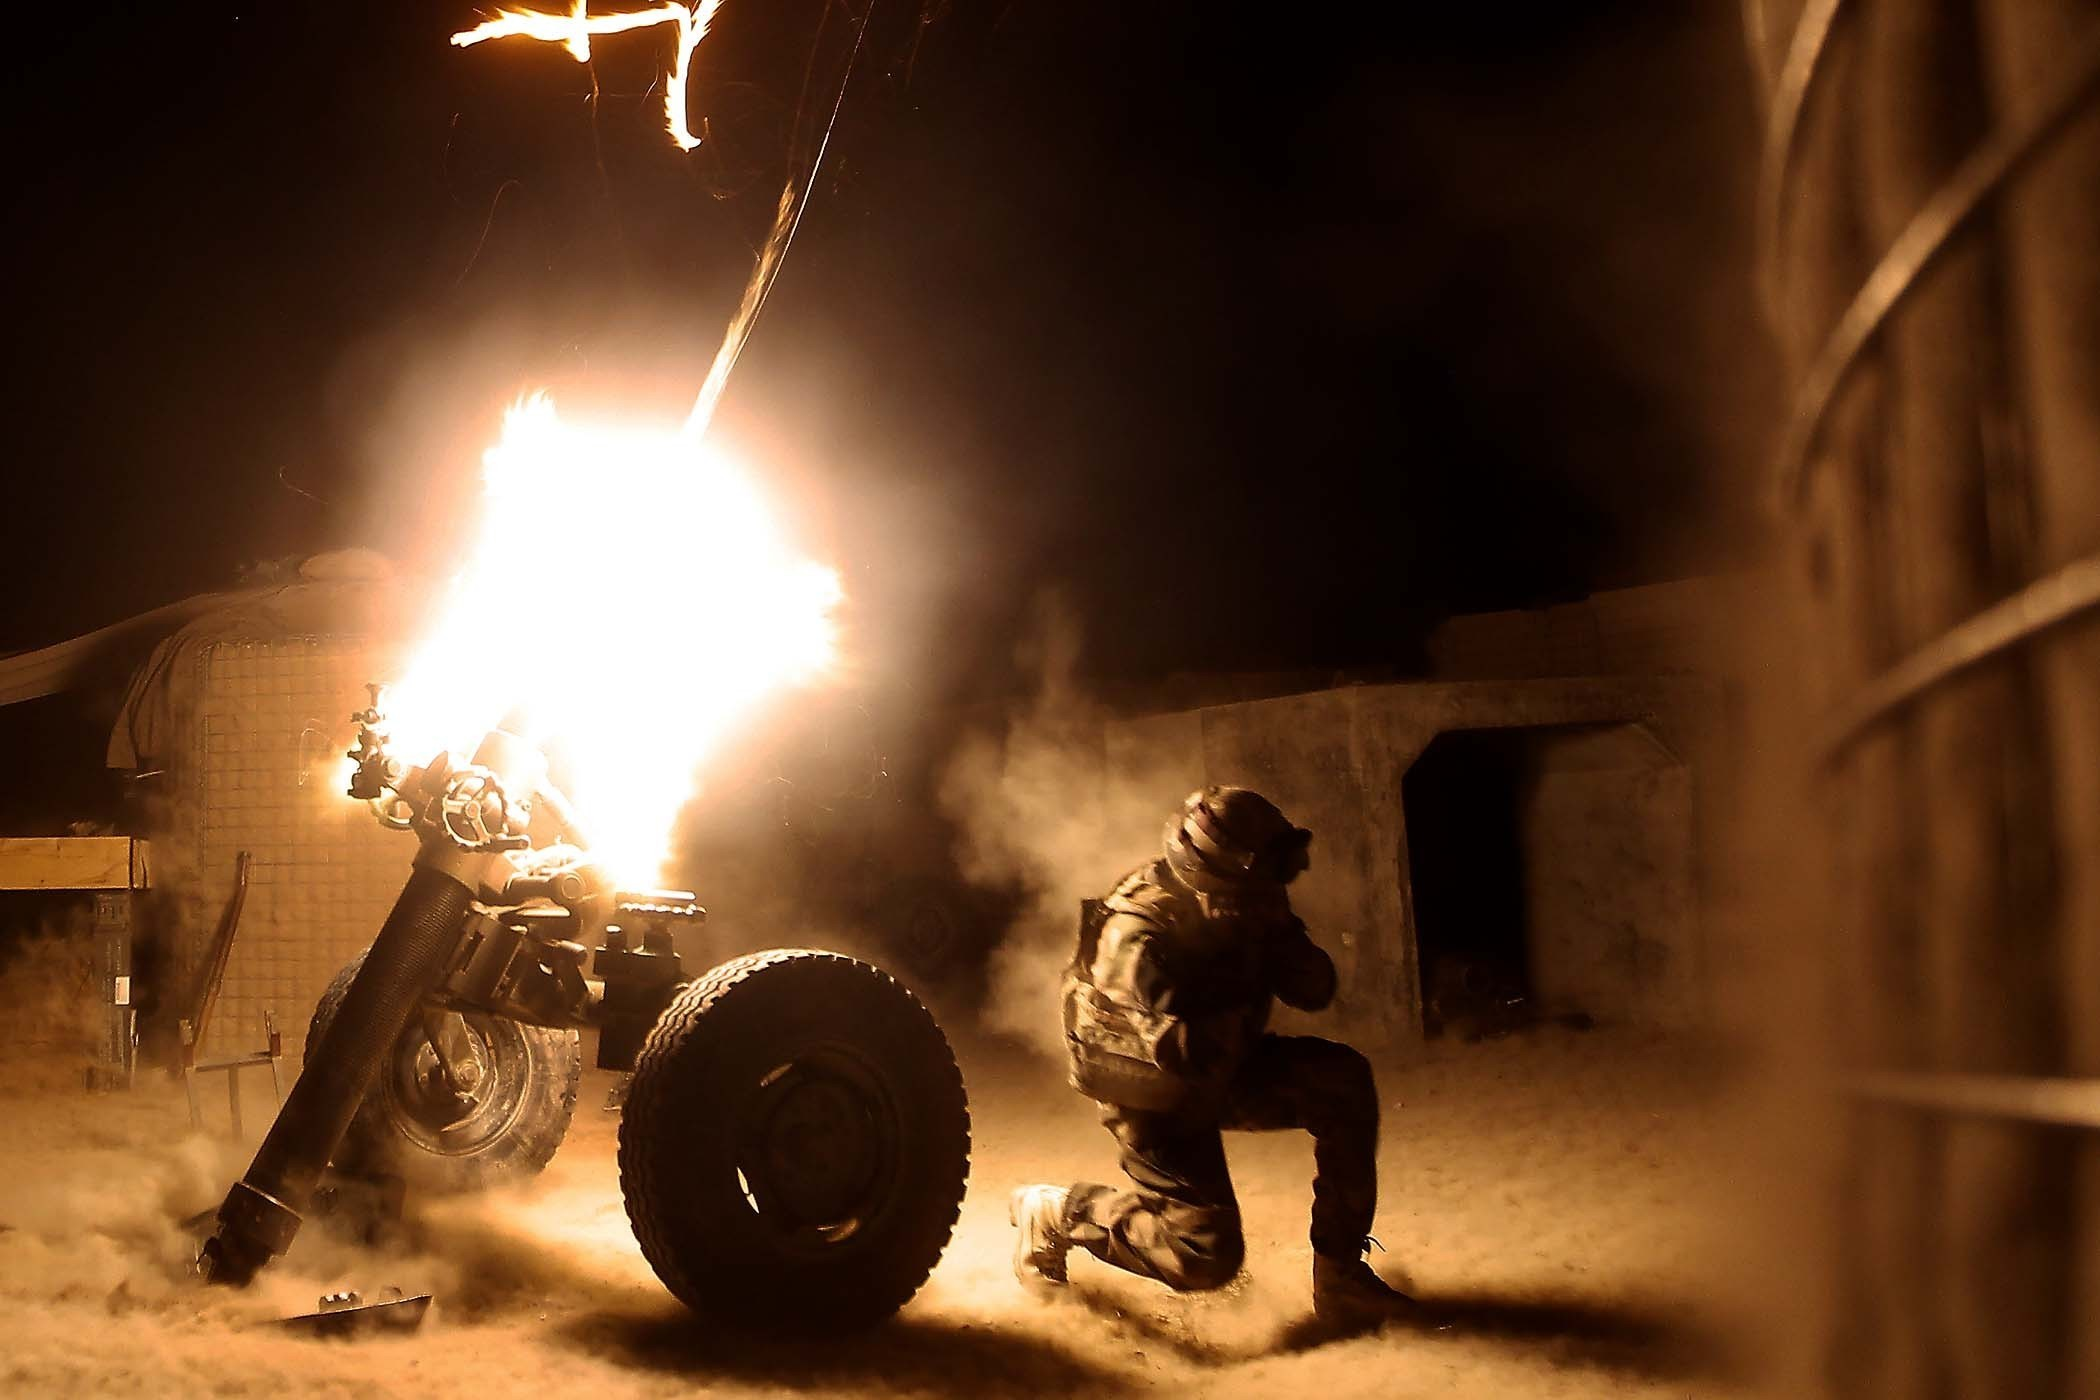 soldiers War military mortar HD Wallpaper